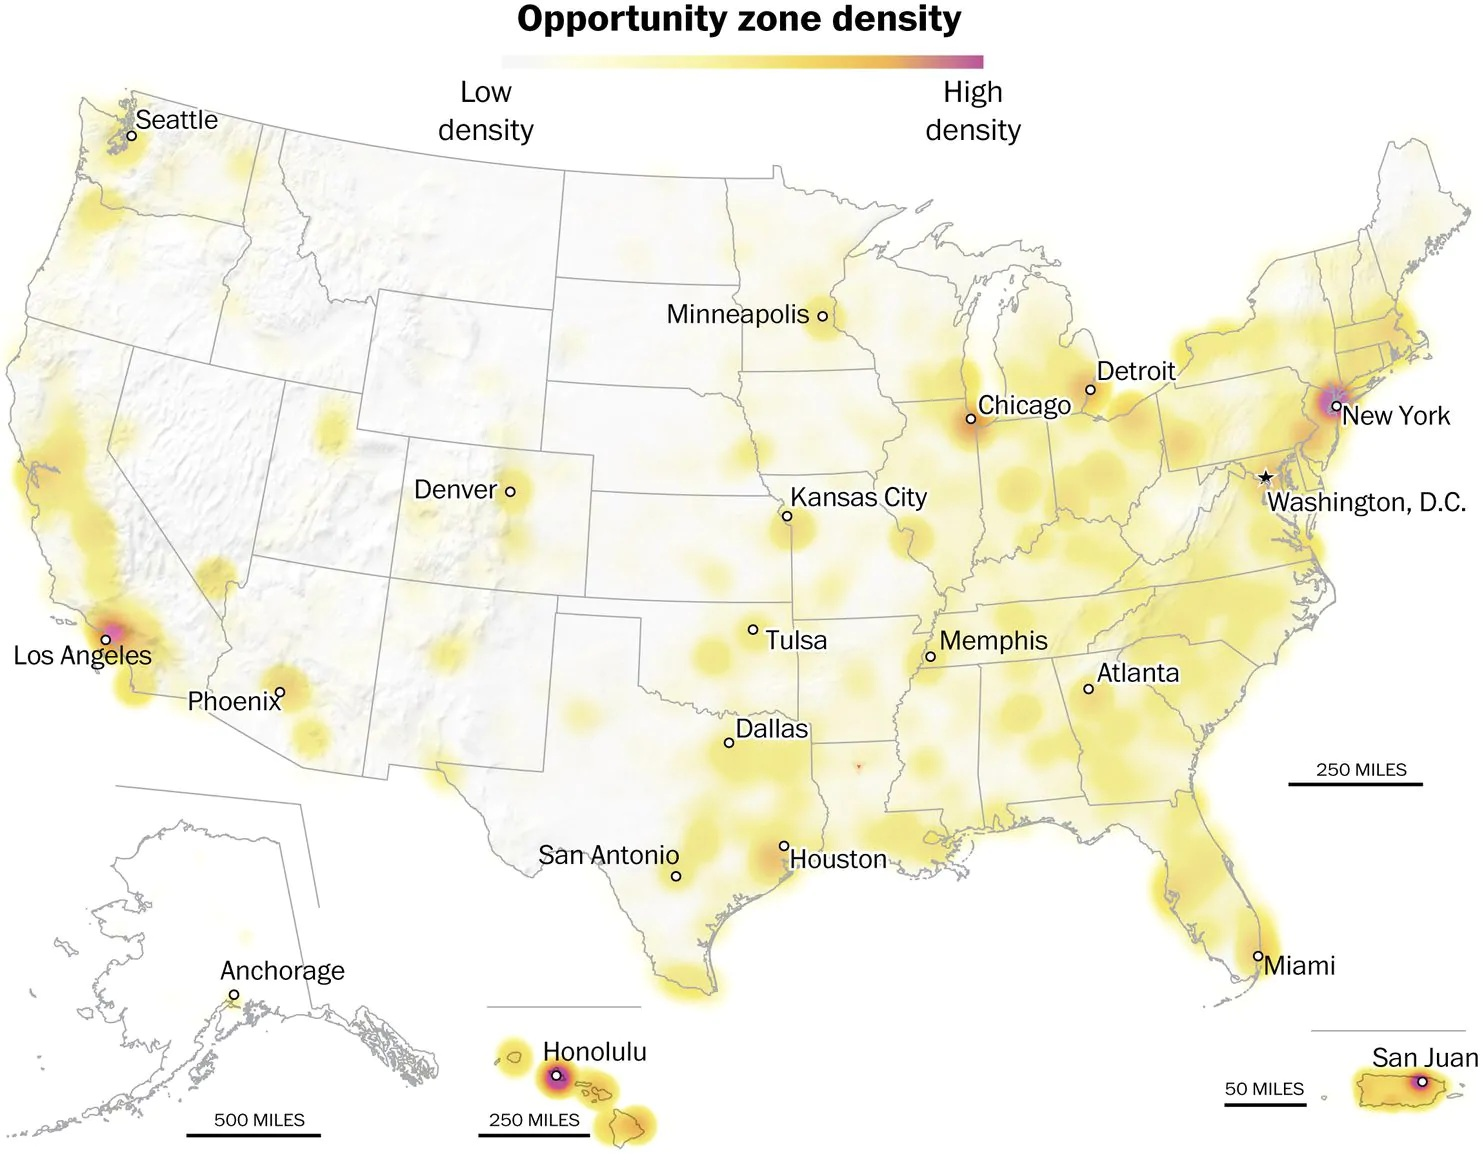 The designated Opportunity Zones across the 50 states and D.C. have an average  poverty rate  of nearly 31 percent, well above the 20 percent eligibility threshold and nearly four points higher than the average across all lower income communities.